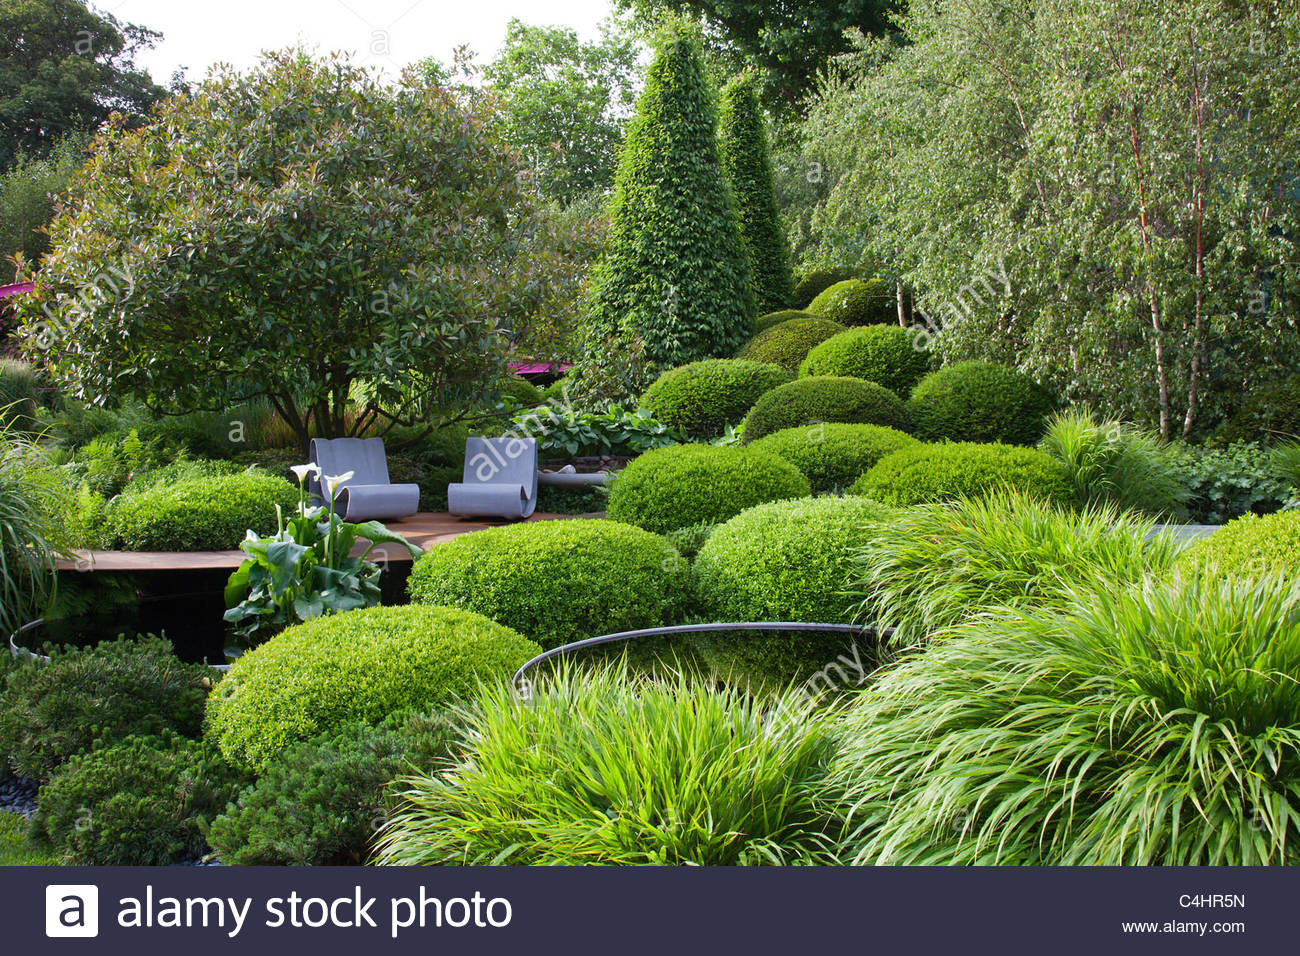 einen gr nen garten mit b umen gr sern hecke pool sitze stockfoto bild 37270737 alamy. Black Bedroom Furniture Sets. Home Design Ideas